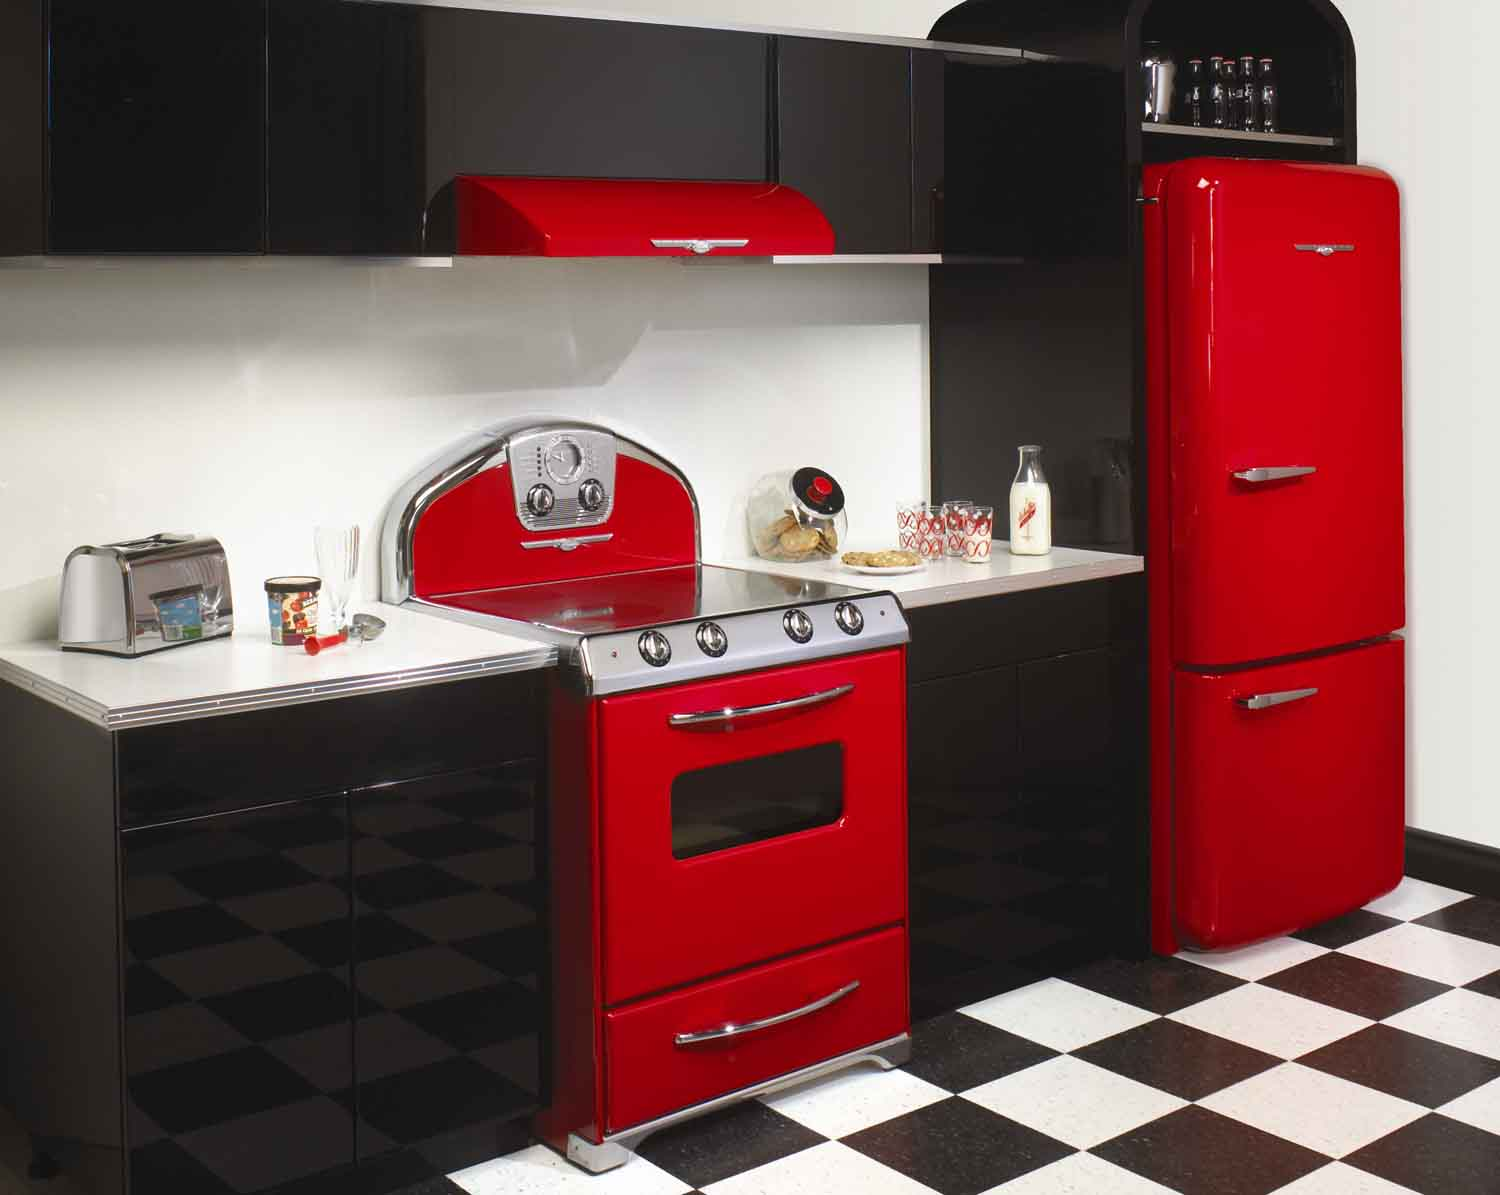 Kitchens From The 1950s | Decoration Empire